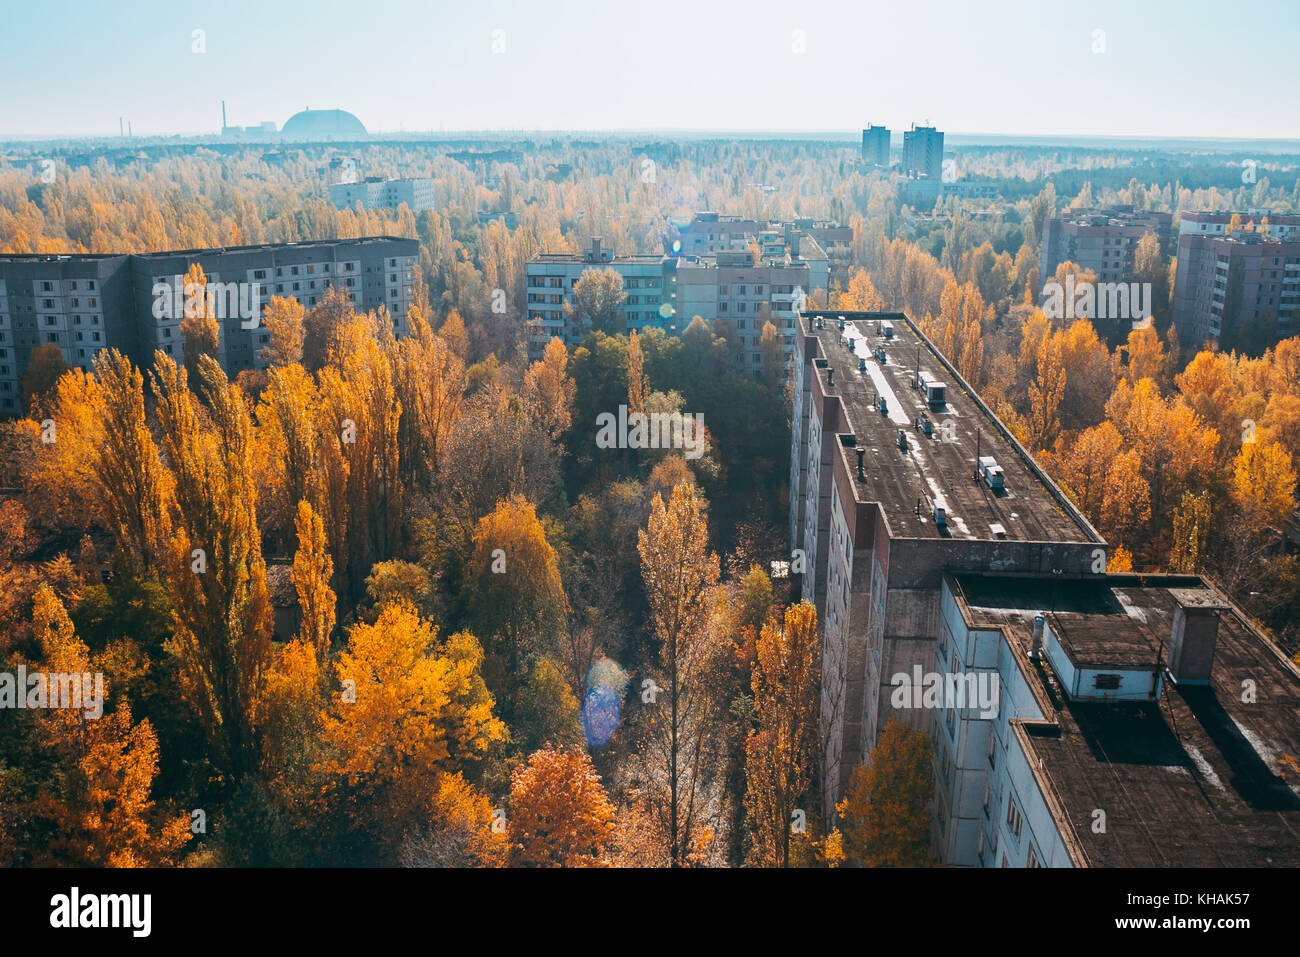 view from a rooftop looking down over the former postcard, idealised Soviet village of Pripyat, where many Chernobyl - Stock Image